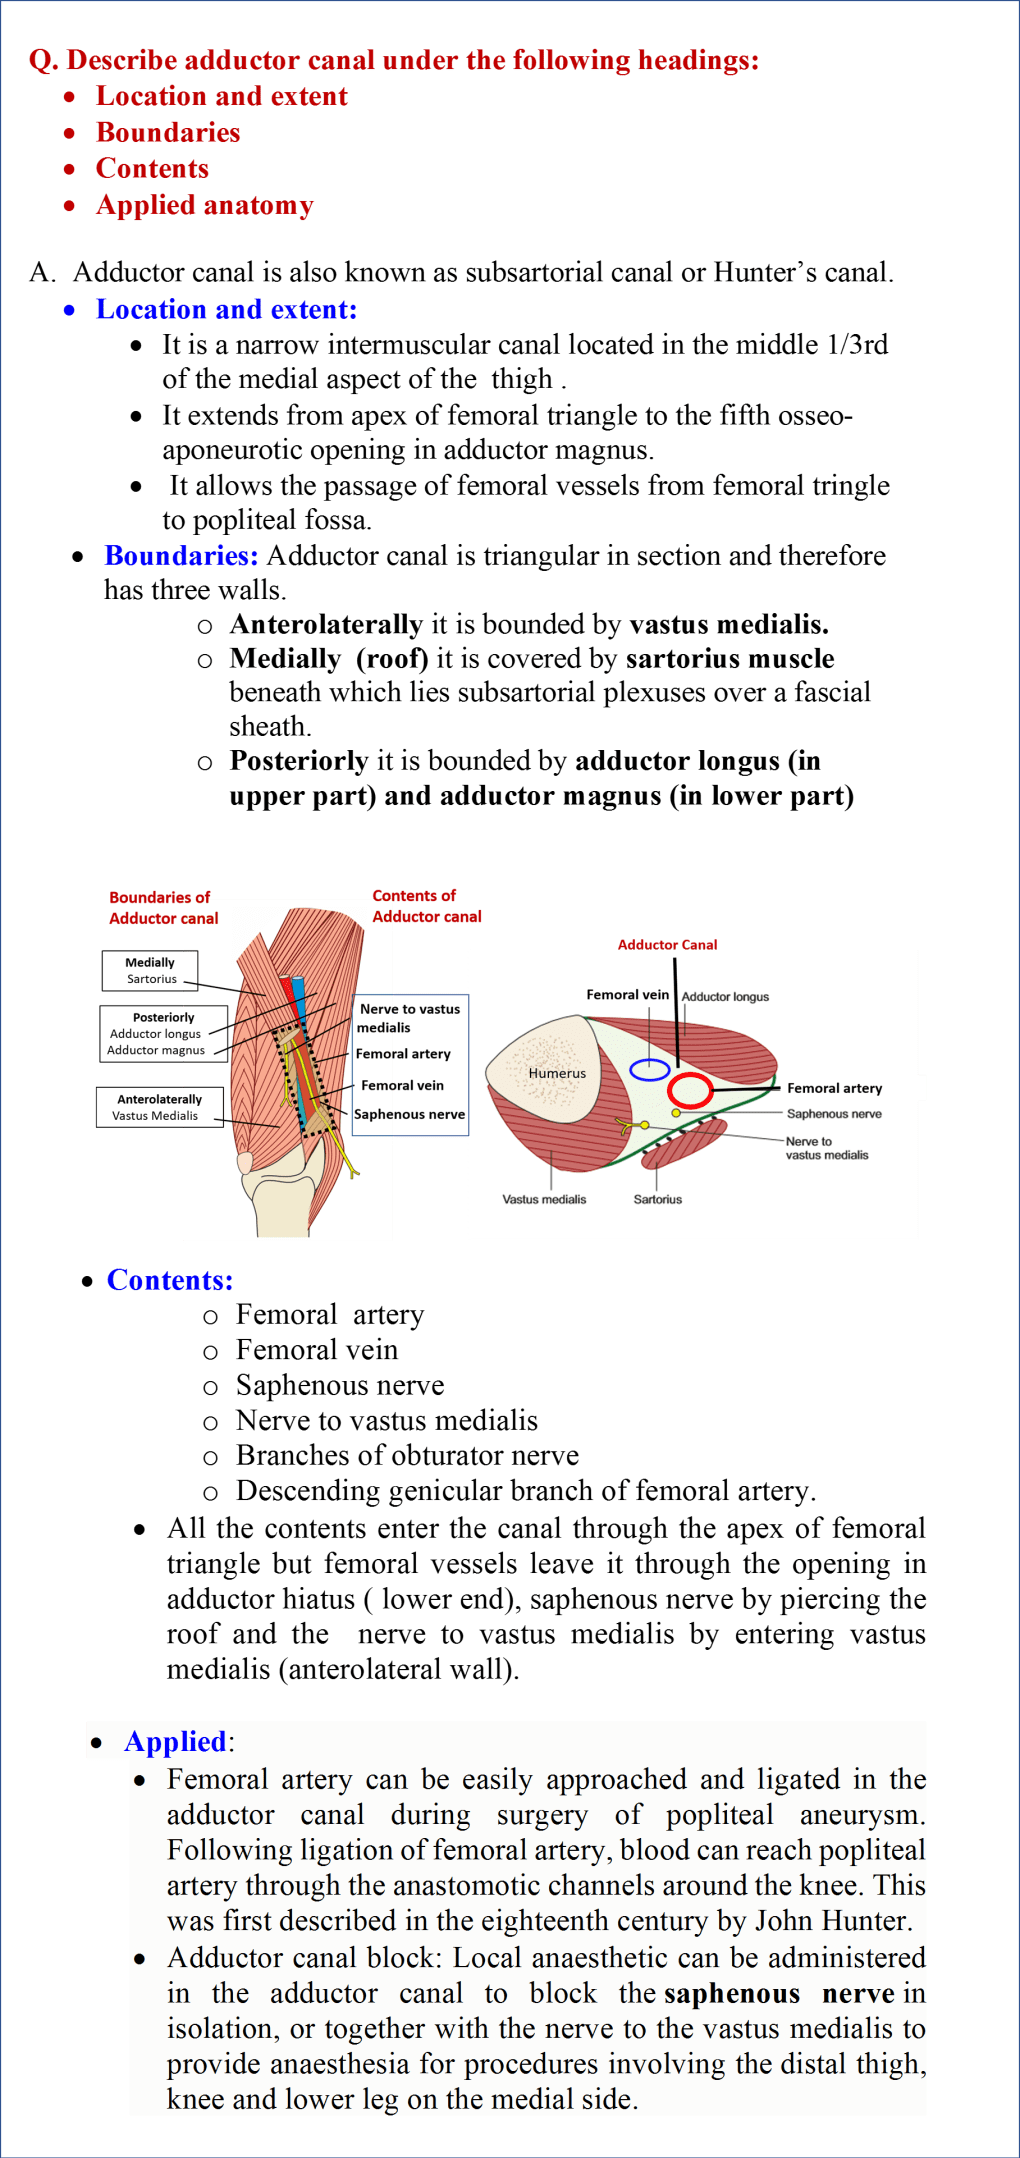 Adductor canal- boundaries and contents